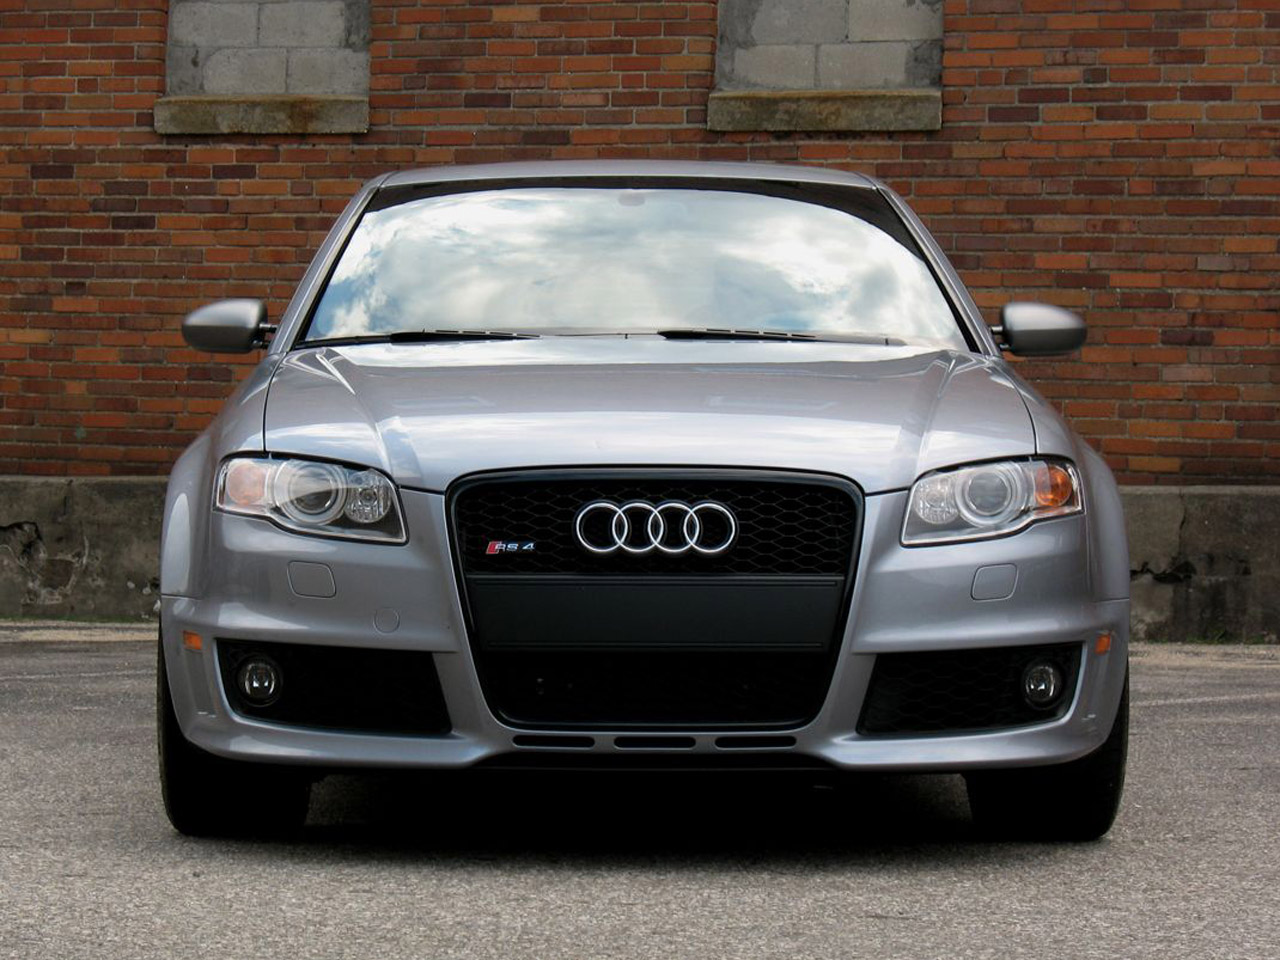 Acura Certified Pre Owned >> Review: 2008 Audi RS4 Photo Gallery - Autoblog